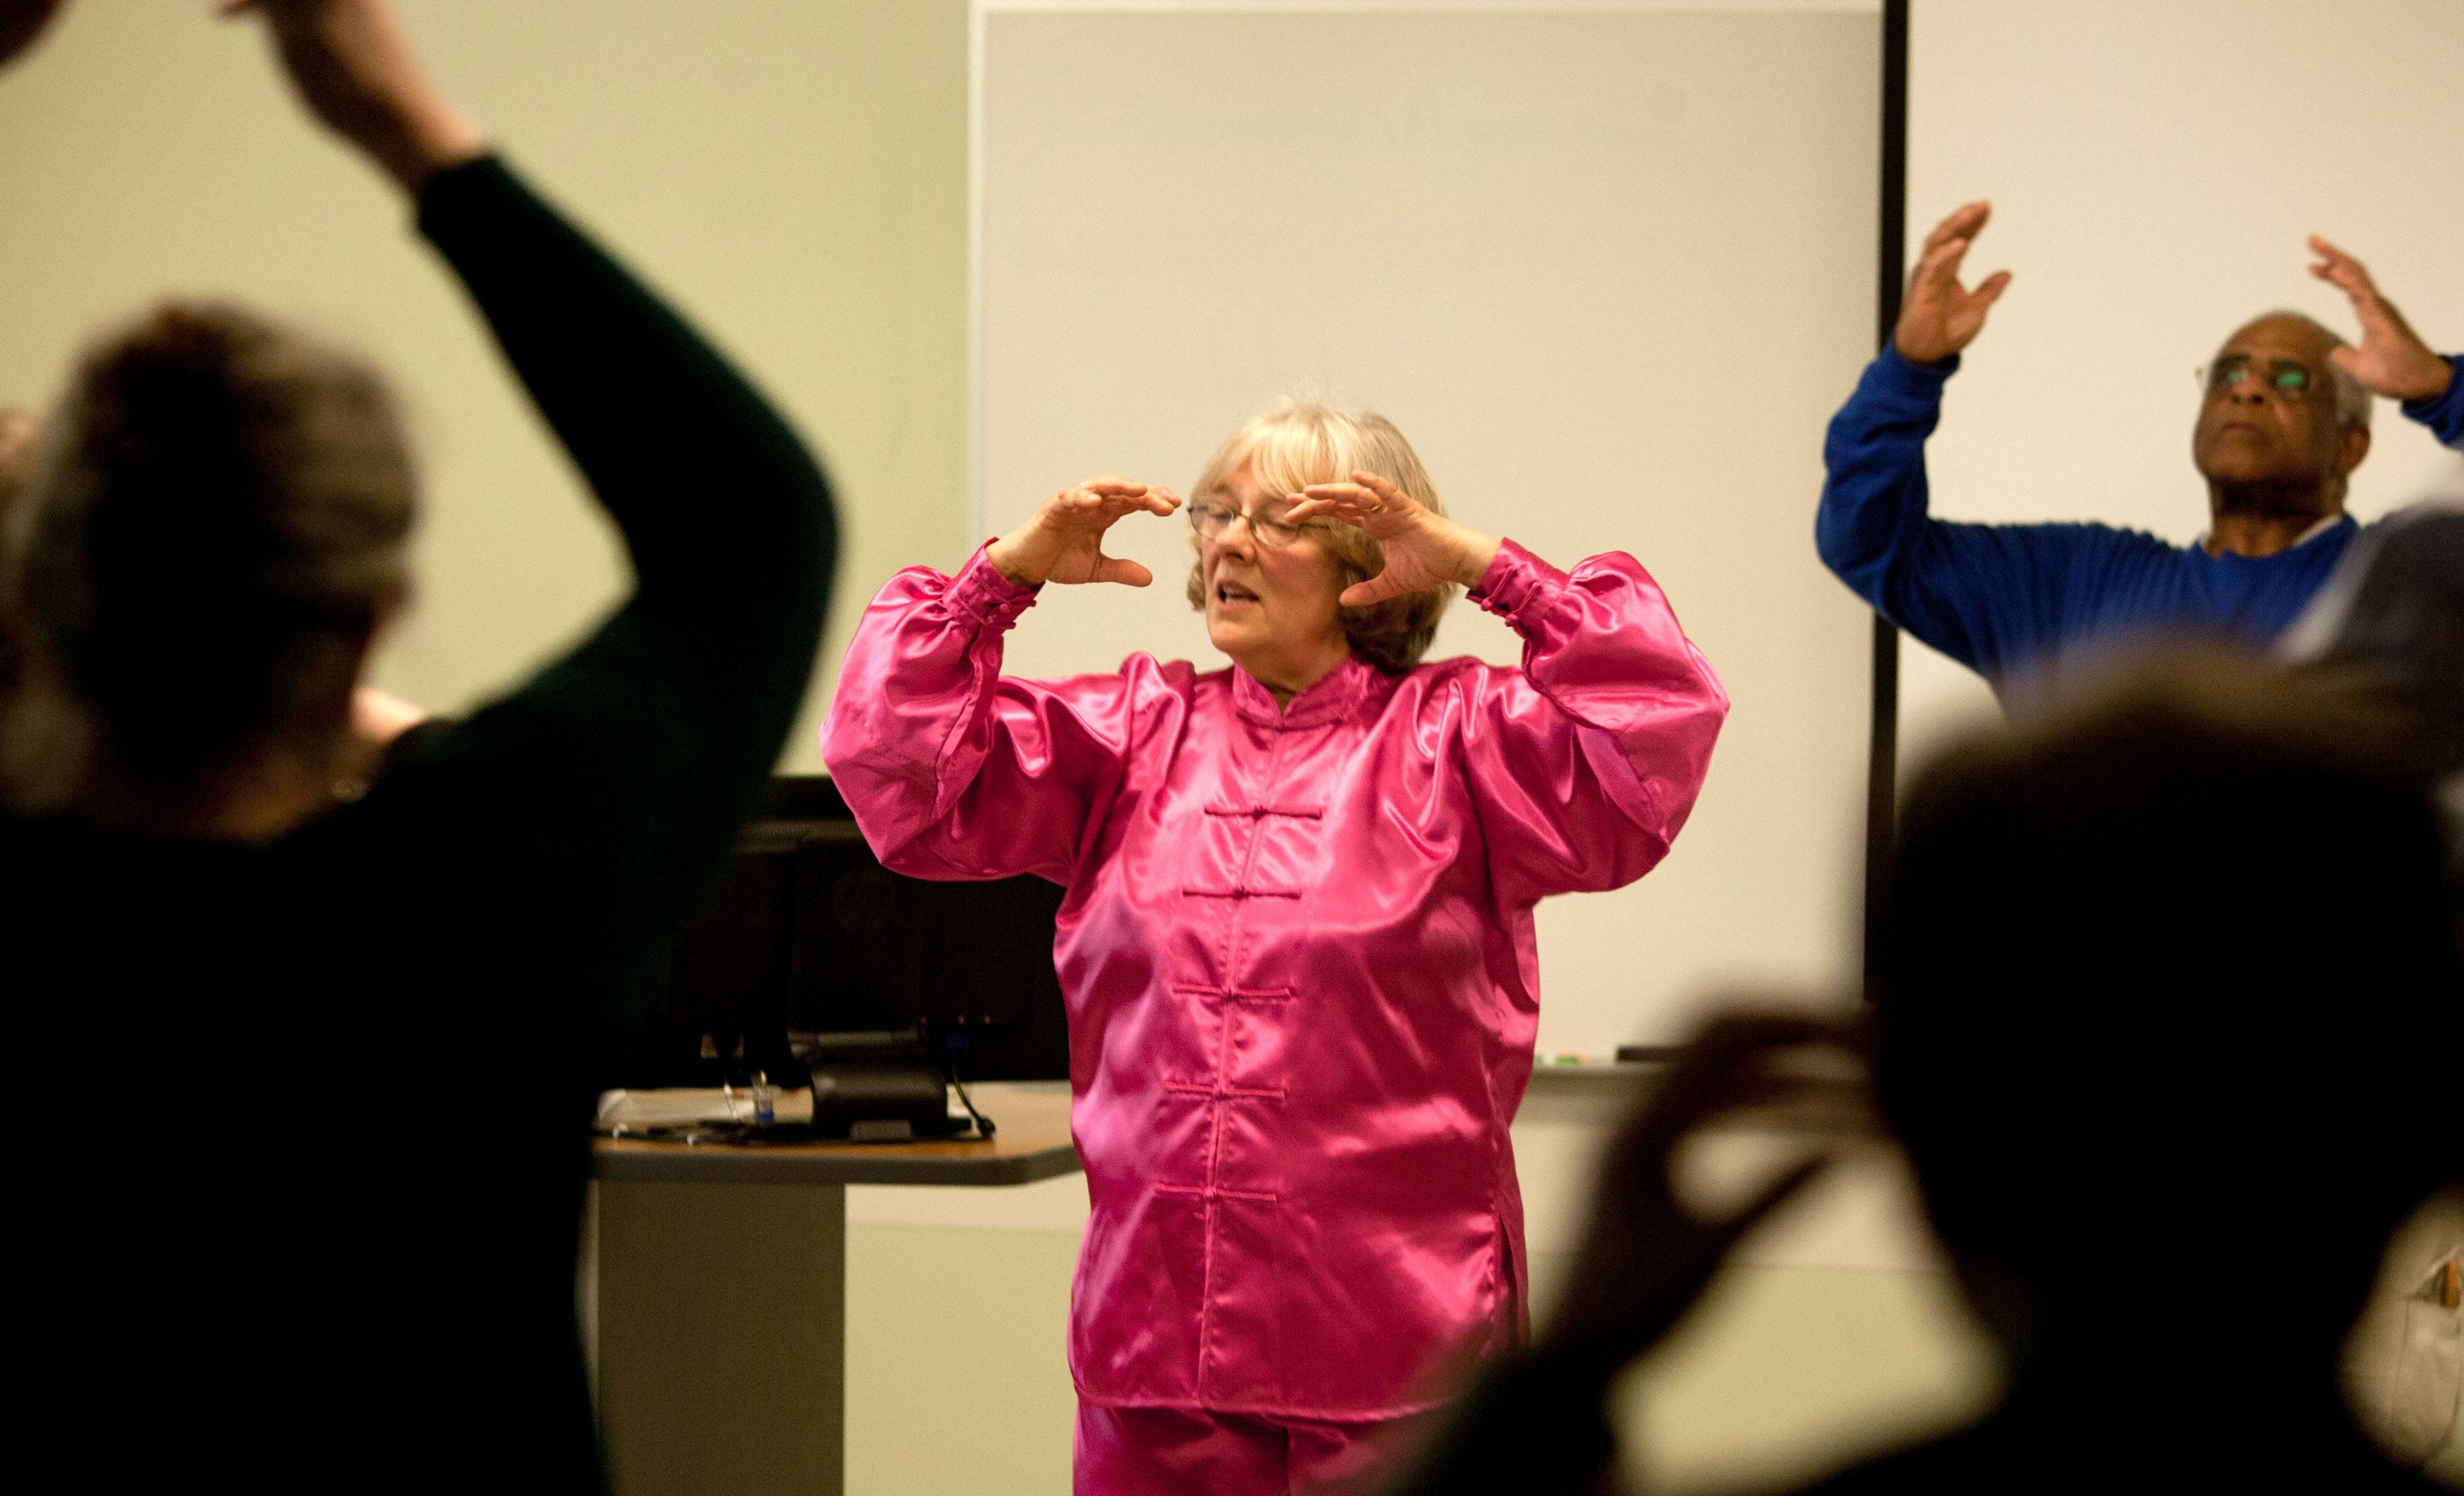 Tia Greenfield leads a Tai Chi class, an ancient Chinese martial art turned into a healing art, on Sunday during the second annual Age Well DuPage at the College of DuPage. The event showed older residents how to stay physically, mentally and fiscally healthy as they age.